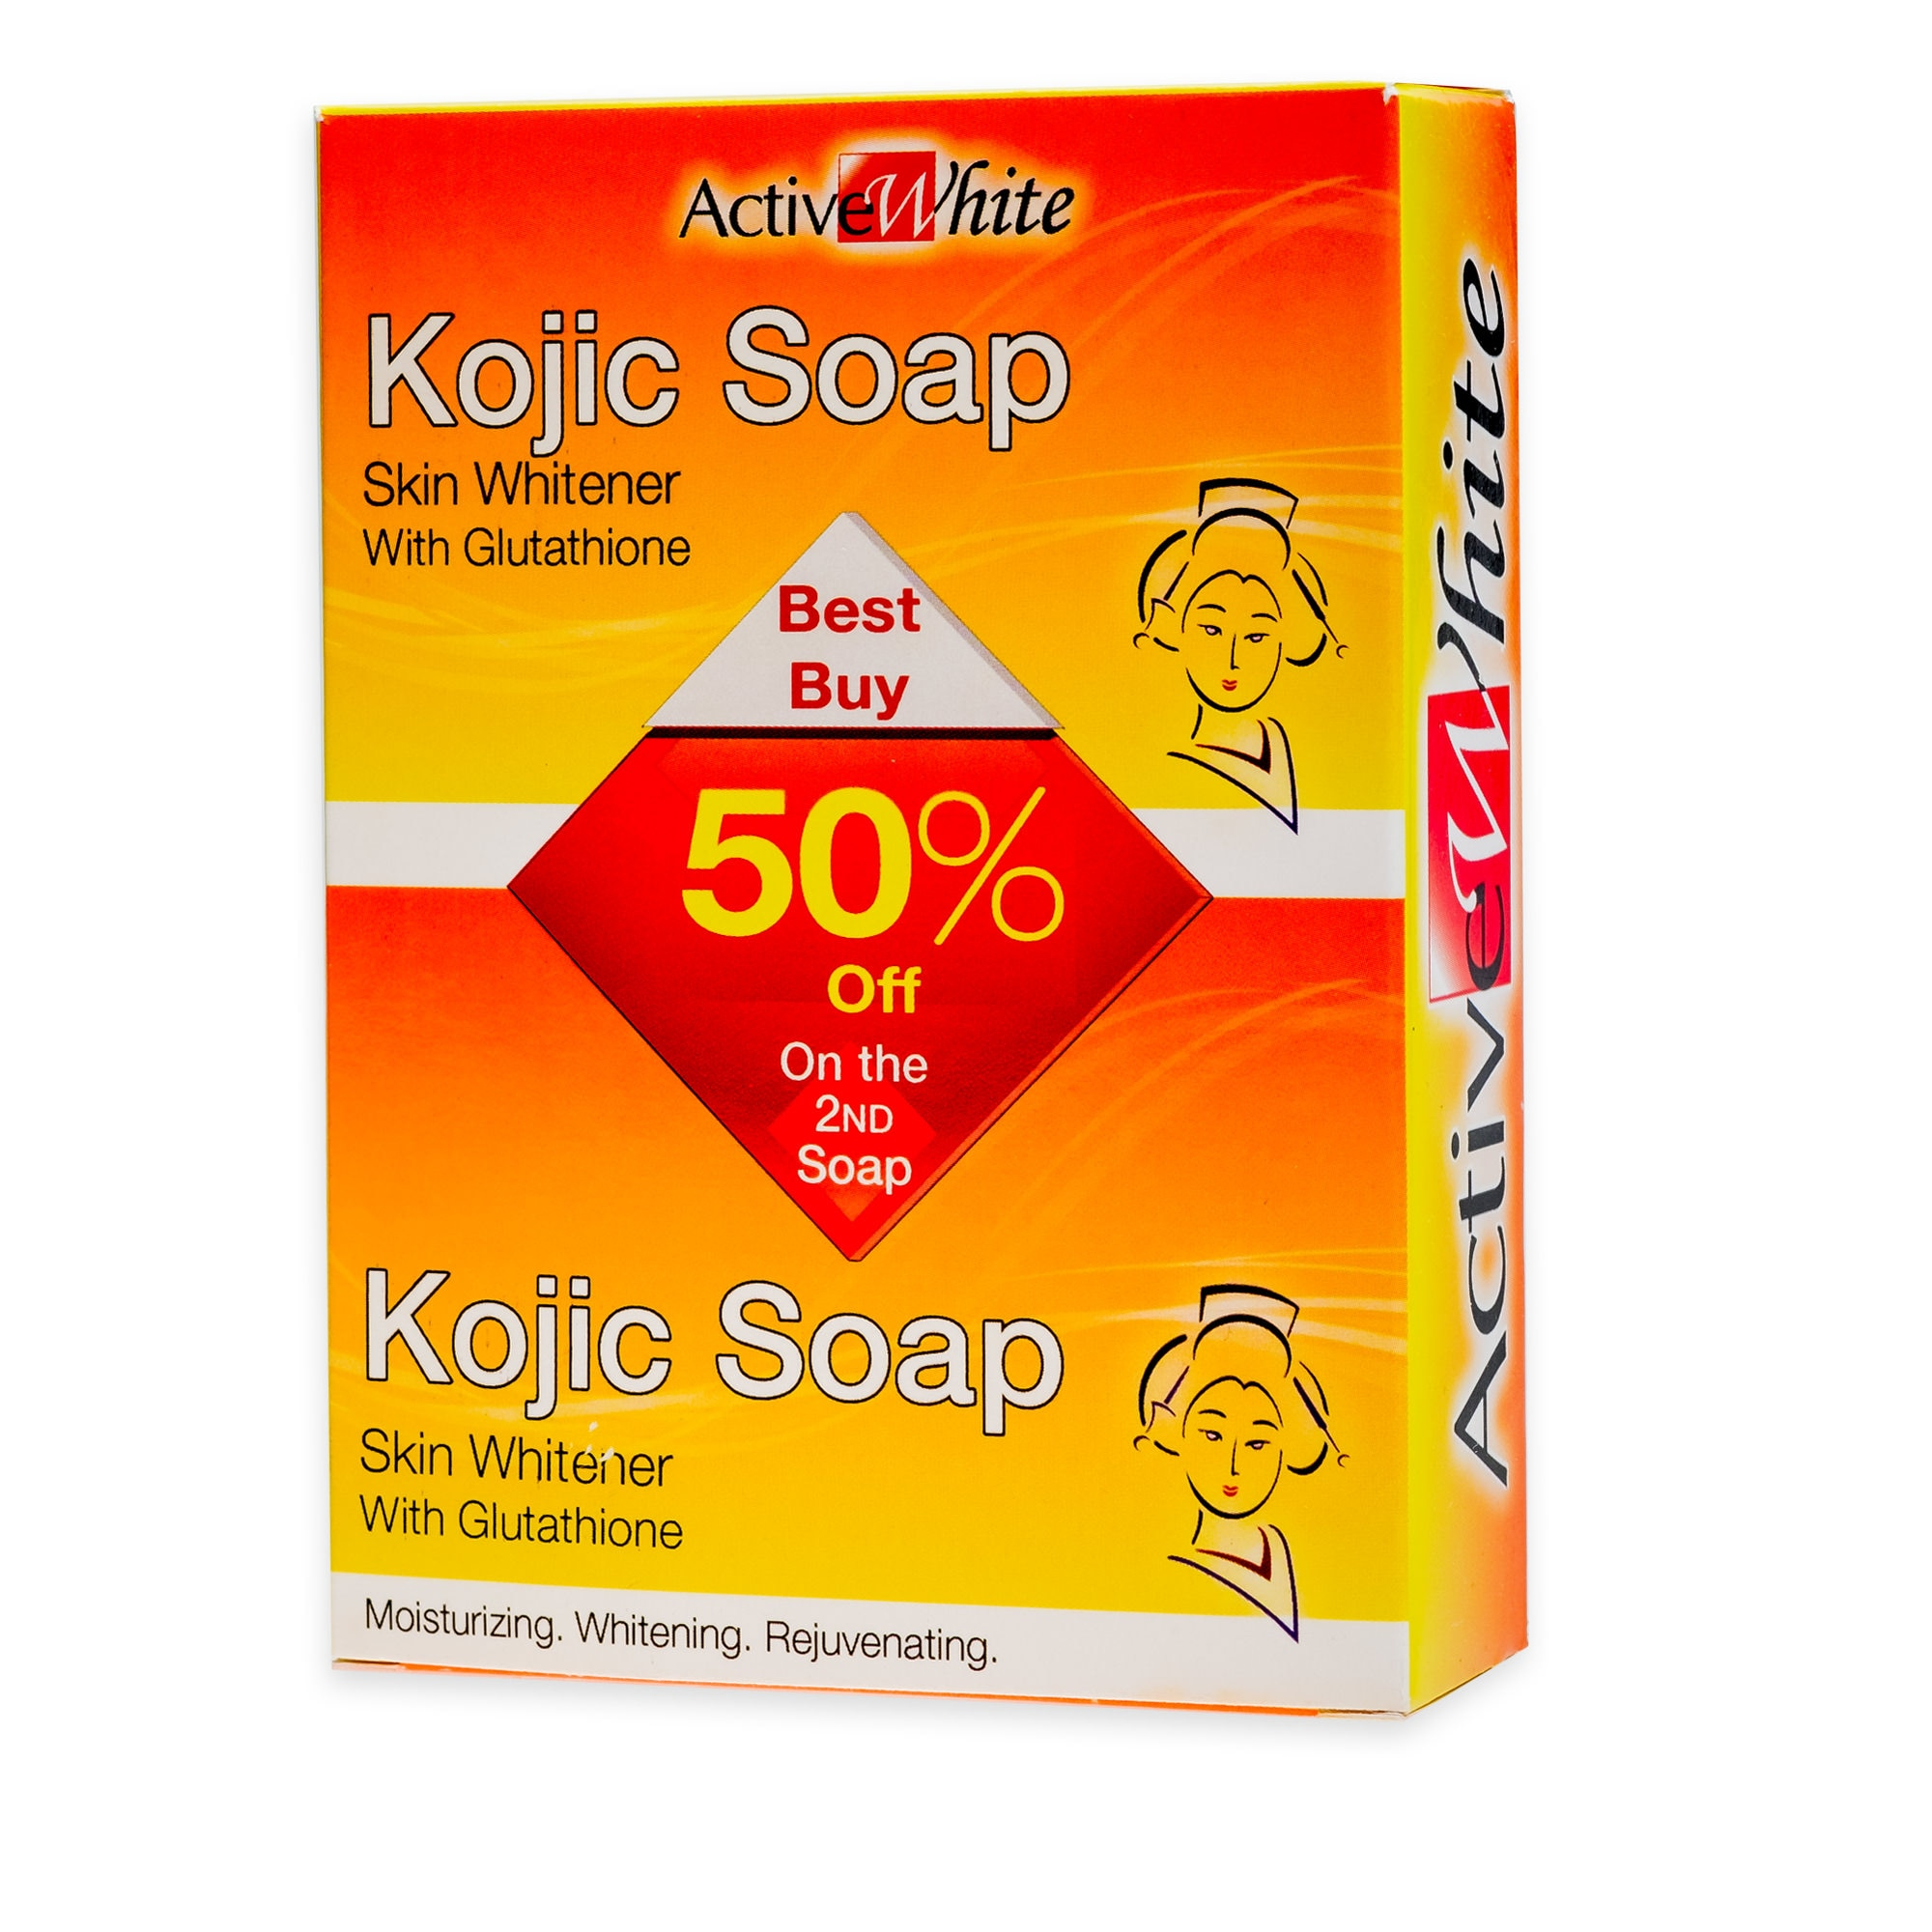 ACTIVE WHITEKojic Soap 50% off,Bar SoapGet 1 Free Maxipeel Sun Protect Cream 15g when you buy any of selected Personal Care products per transaction.